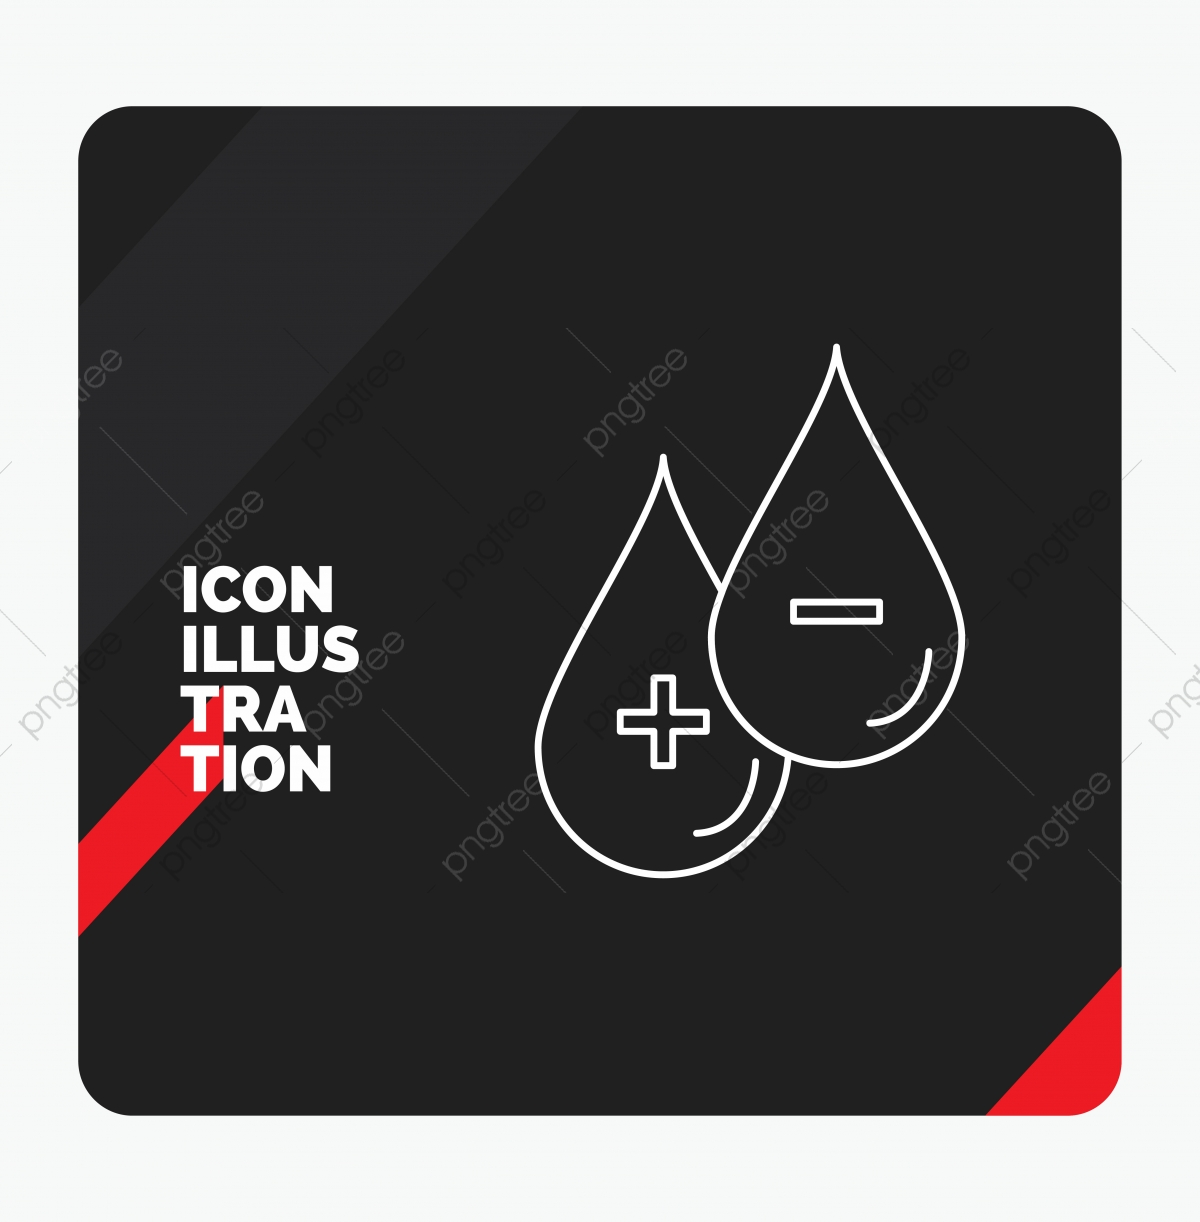 Red And Black Creative Presentation Background For Blood Drop Presentation Icons Black Icons Creative Icons Png And Vector With Transparent Background For Free Download